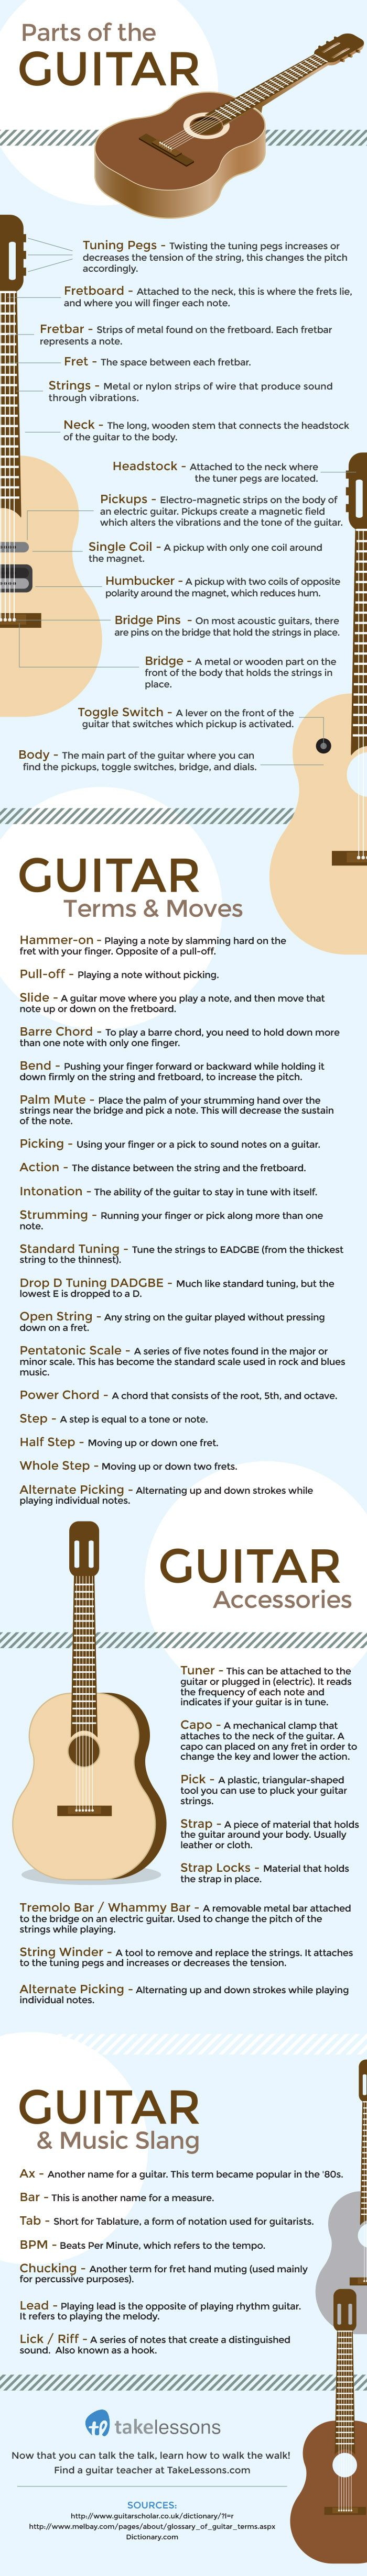 Essential Guitar Terms for Beginners